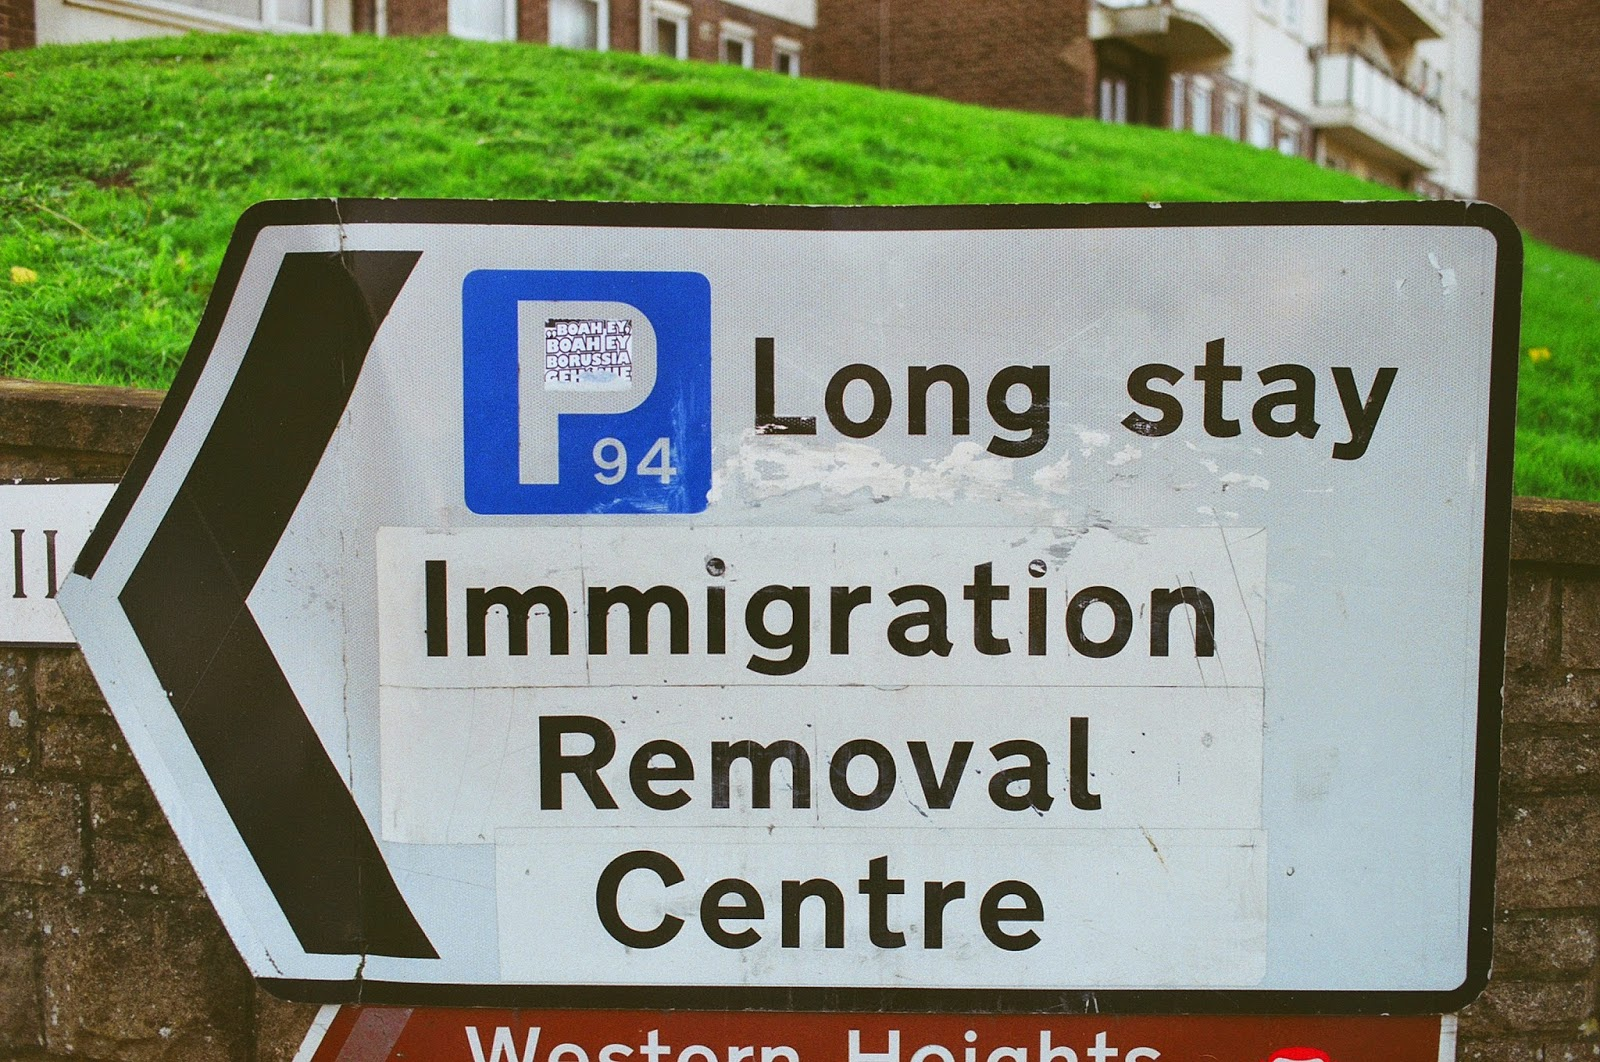 IMMIGRATION, ASYLUM SEEKERS, DETENTION CENTRES, UK BORDERS, CALAIS BORDER CONTROL, BORSTAL, DOVER, KENT, ILLEGAL IMMIGRANTS, MIGRANT WORKERS, EASTERN EUROPEAN MIGRANT WORKERS, 2015 GENERAL ELECTION, © VAC 100 DAYS 4 MILLION CONVERSATIONS